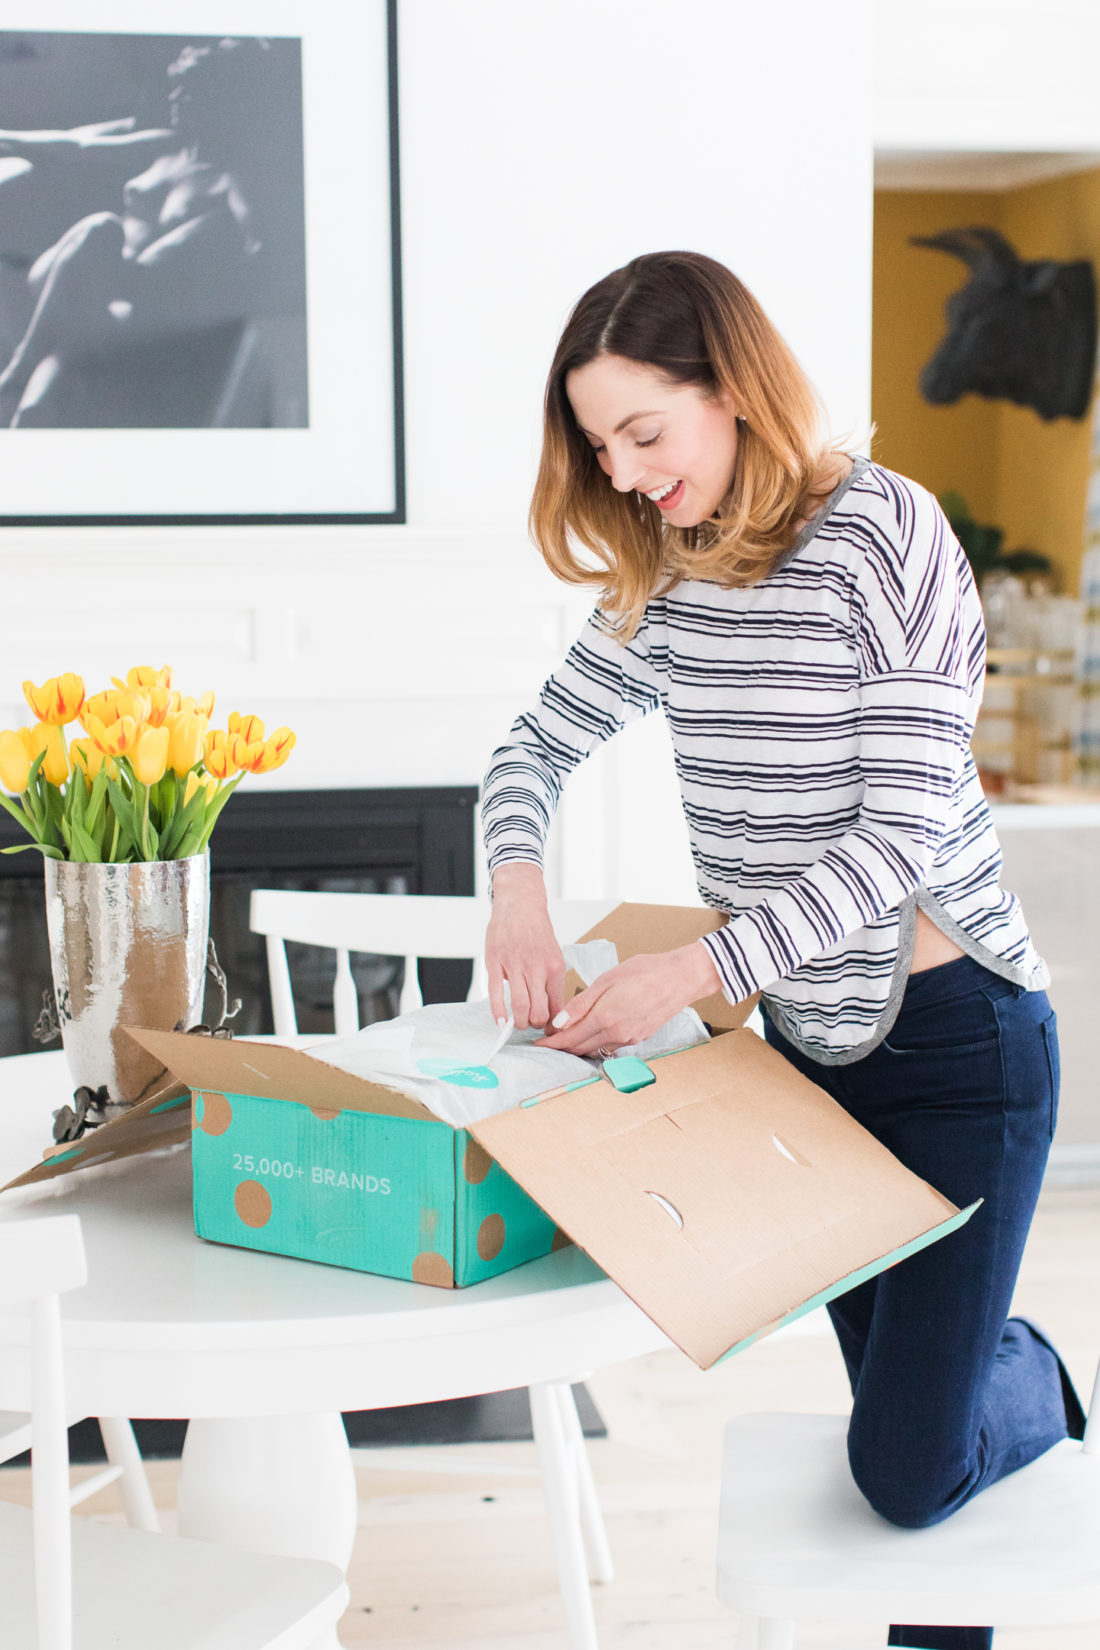 Eva Amurri Martino, of lifestyle and motherhood blog Happily Eva After, unpacks her thredUP delivery box